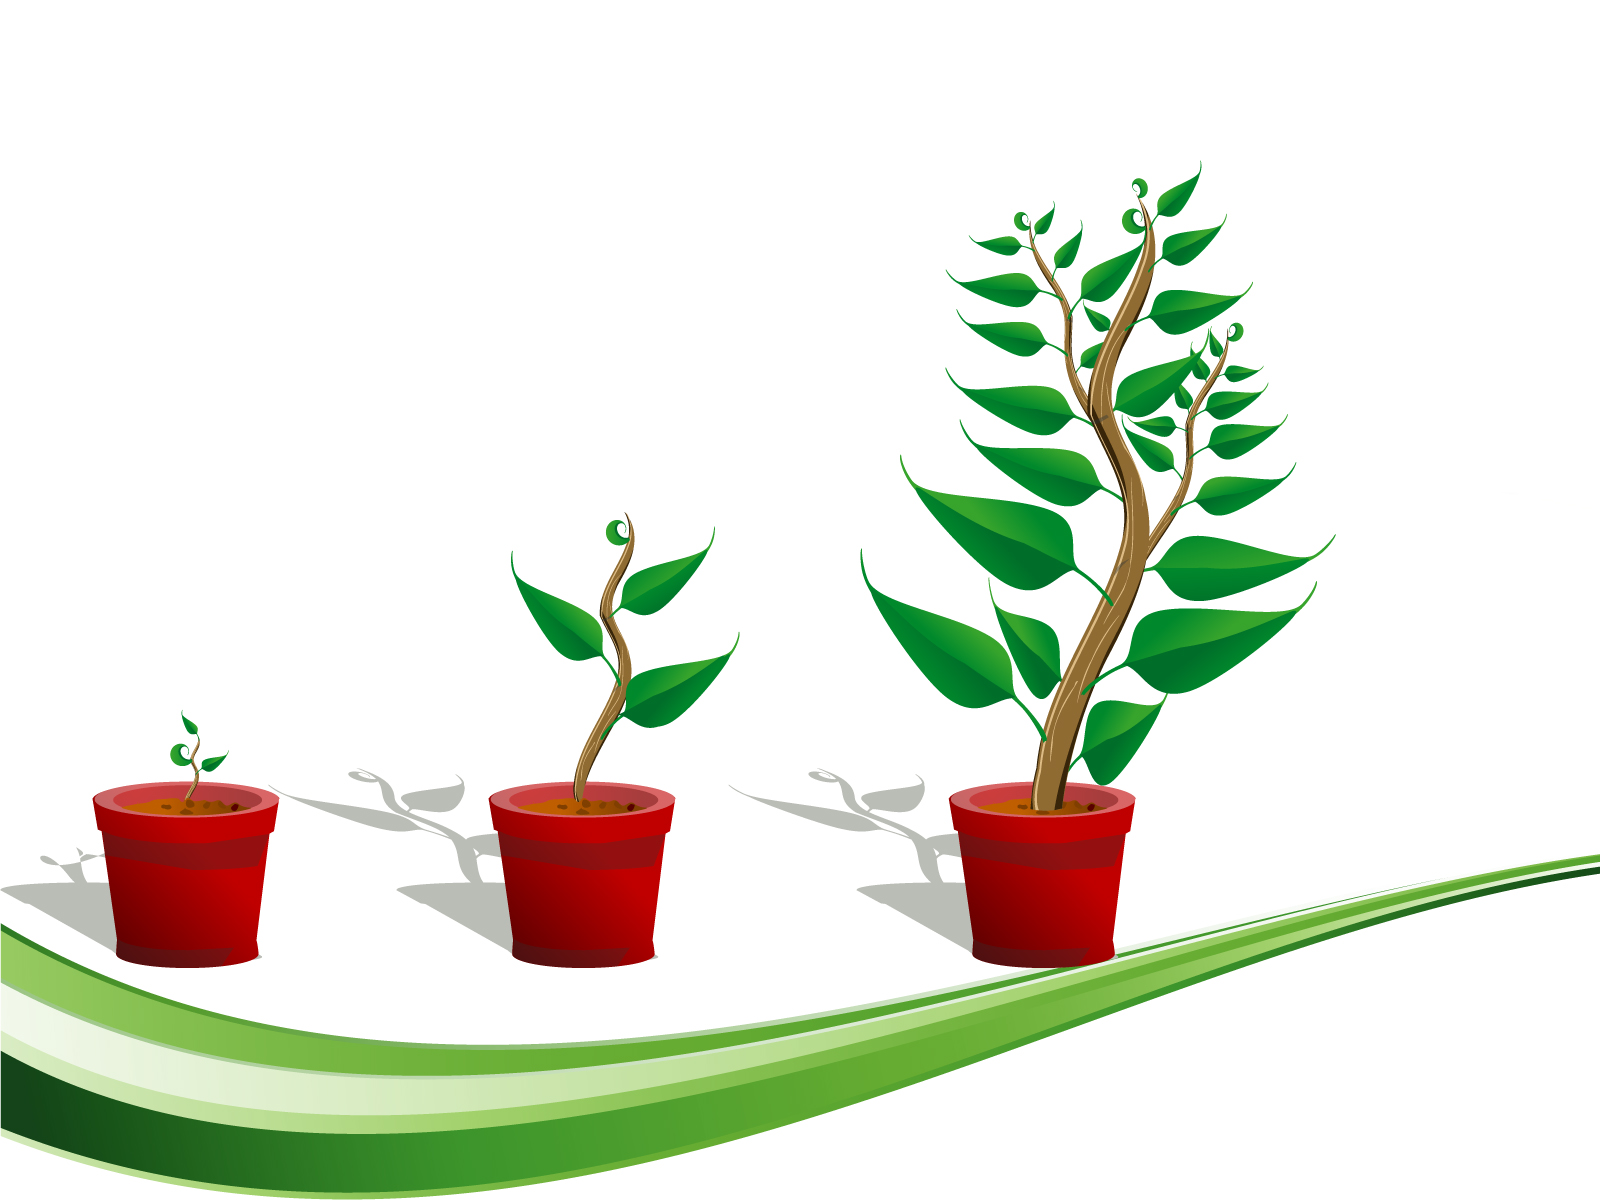 Christmas Home Design Games Green Plants Growth Backgrounds Green Nature Templates